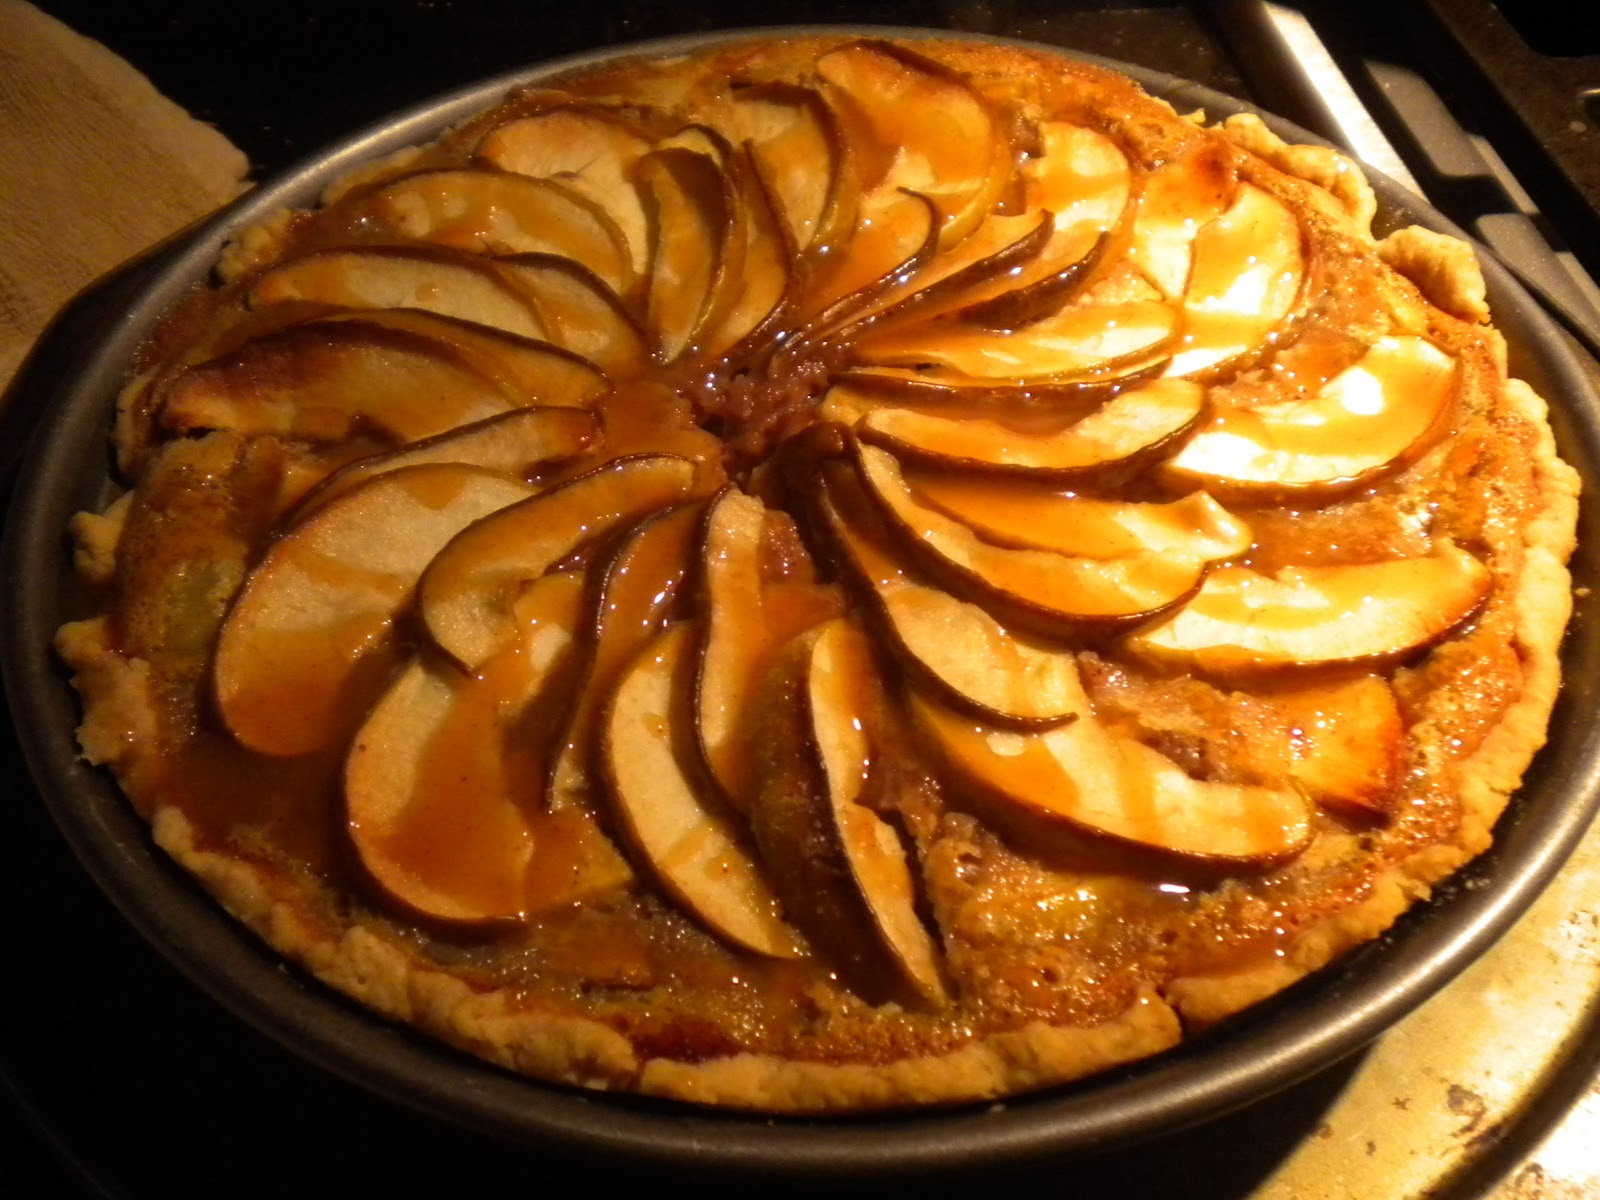 ... : RECIPE: Apple and Pear Pie with Pecan Custard and Caramel Drizzle